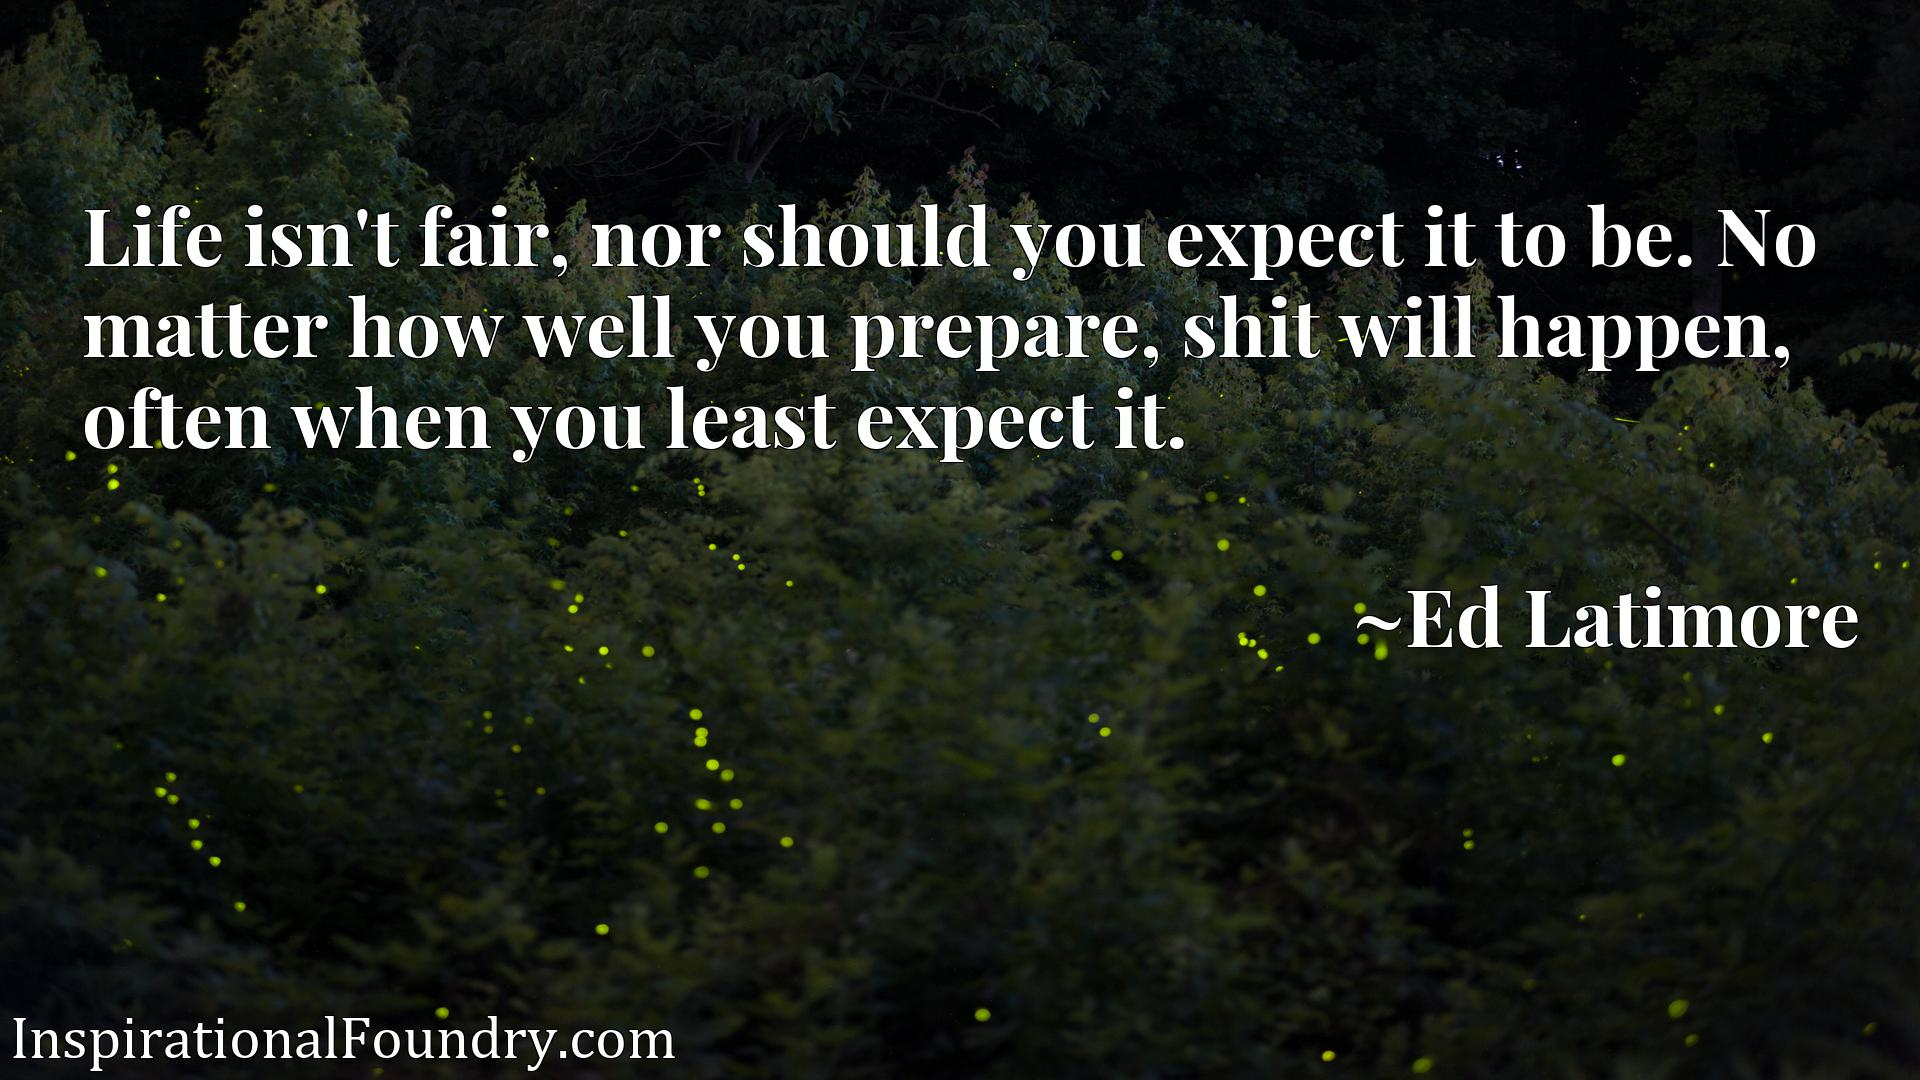 Life isn't fair, nor should you expect it to be. No matter how well you prepare, shit will happen, often when you least expect it.